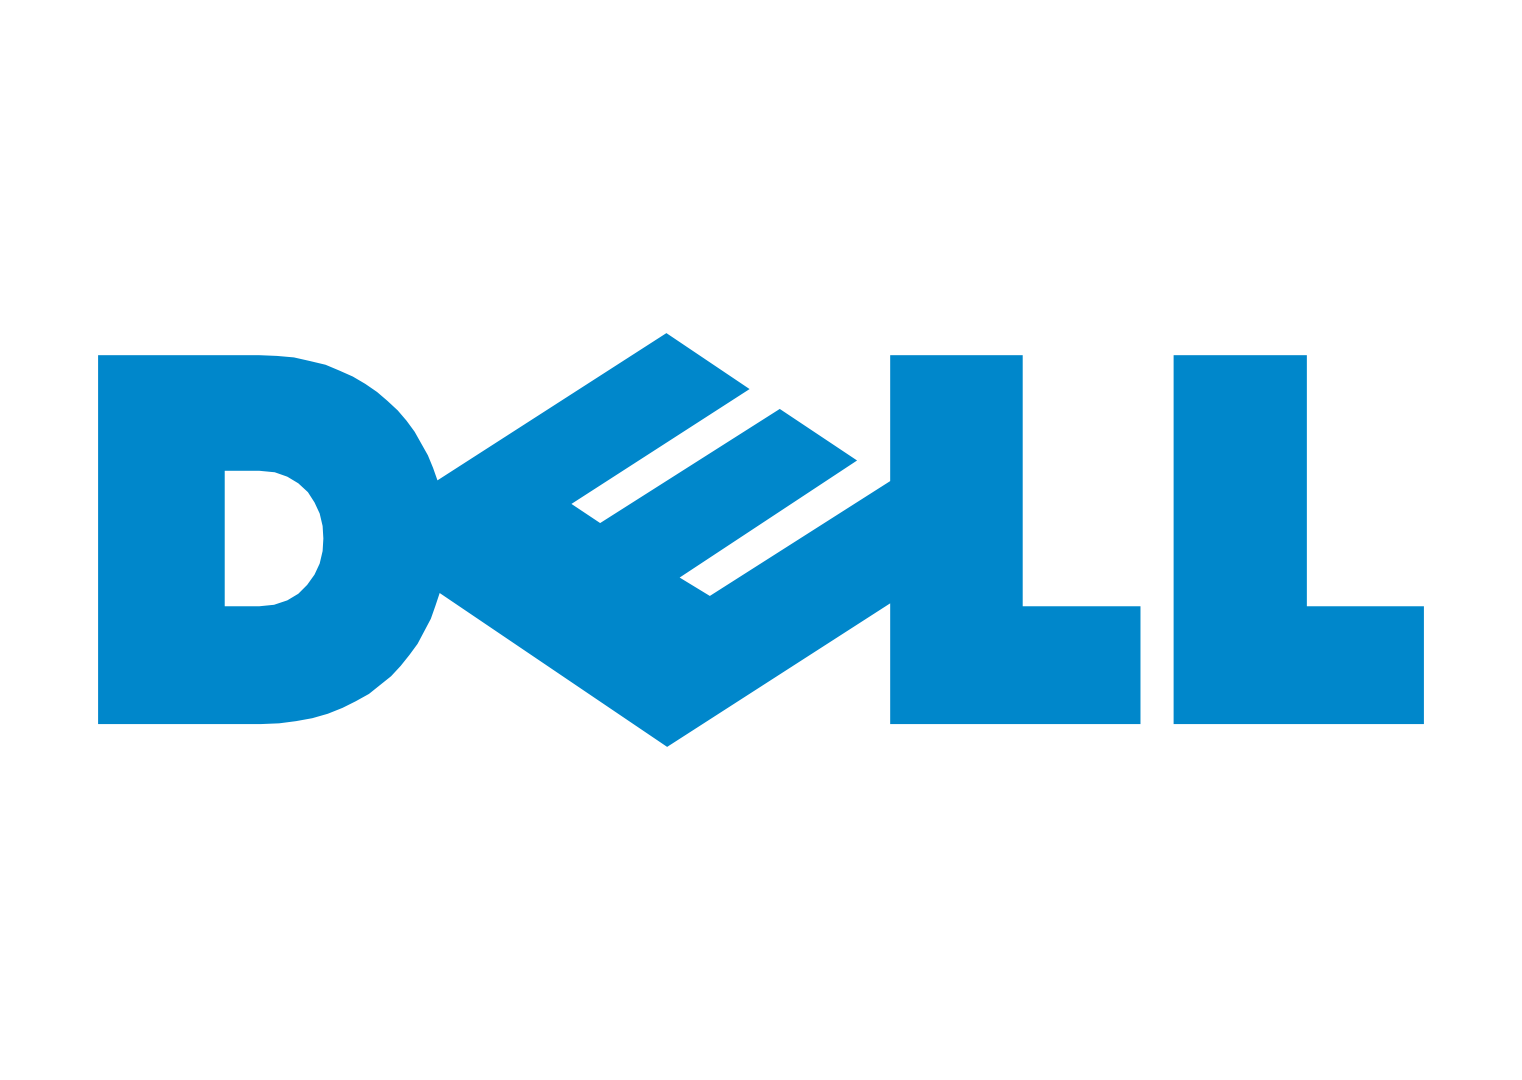 Dell Logo Vector download free